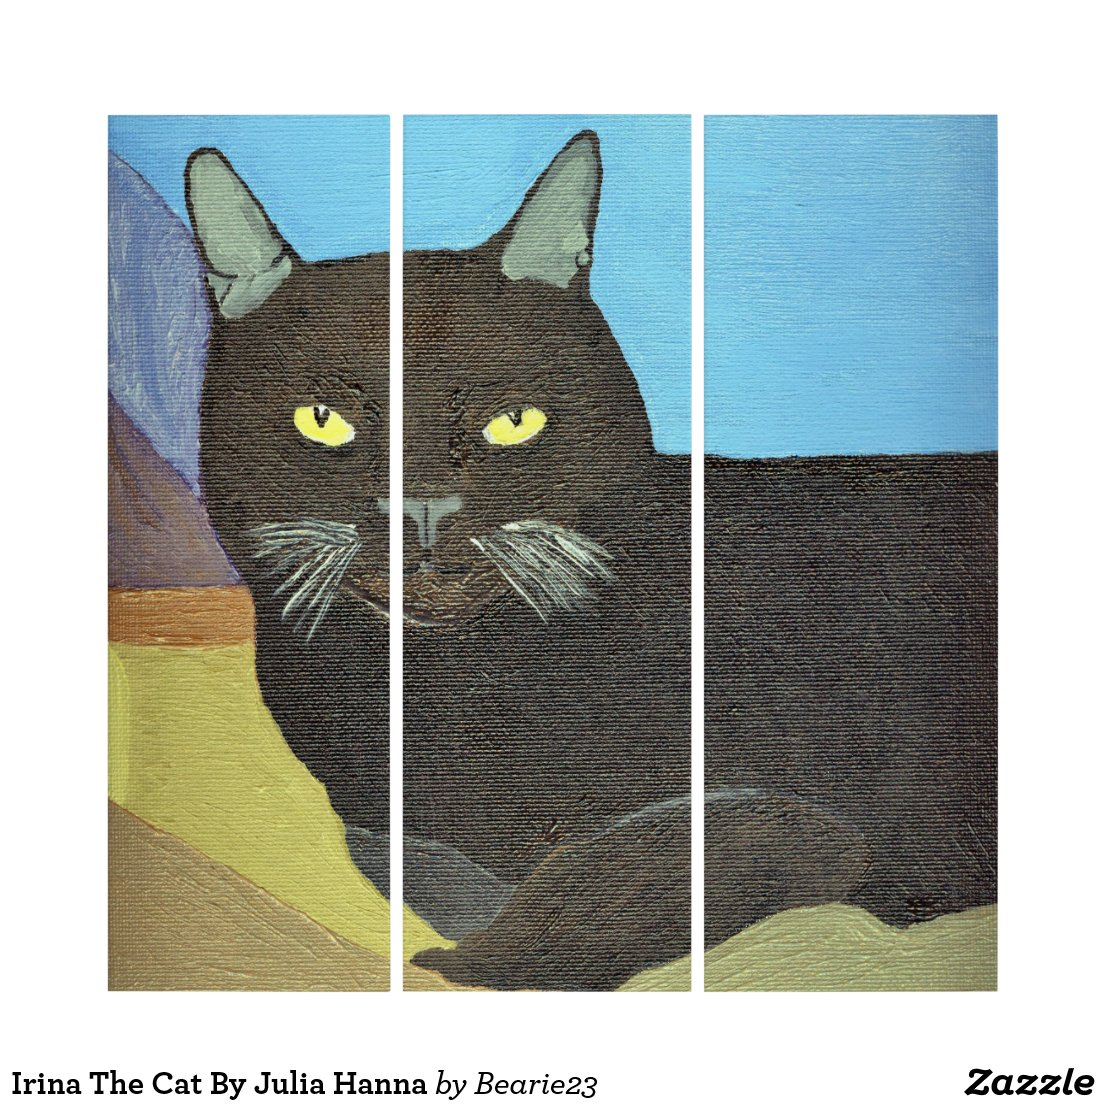 Irina The Cat By Julia Hanna Triptych